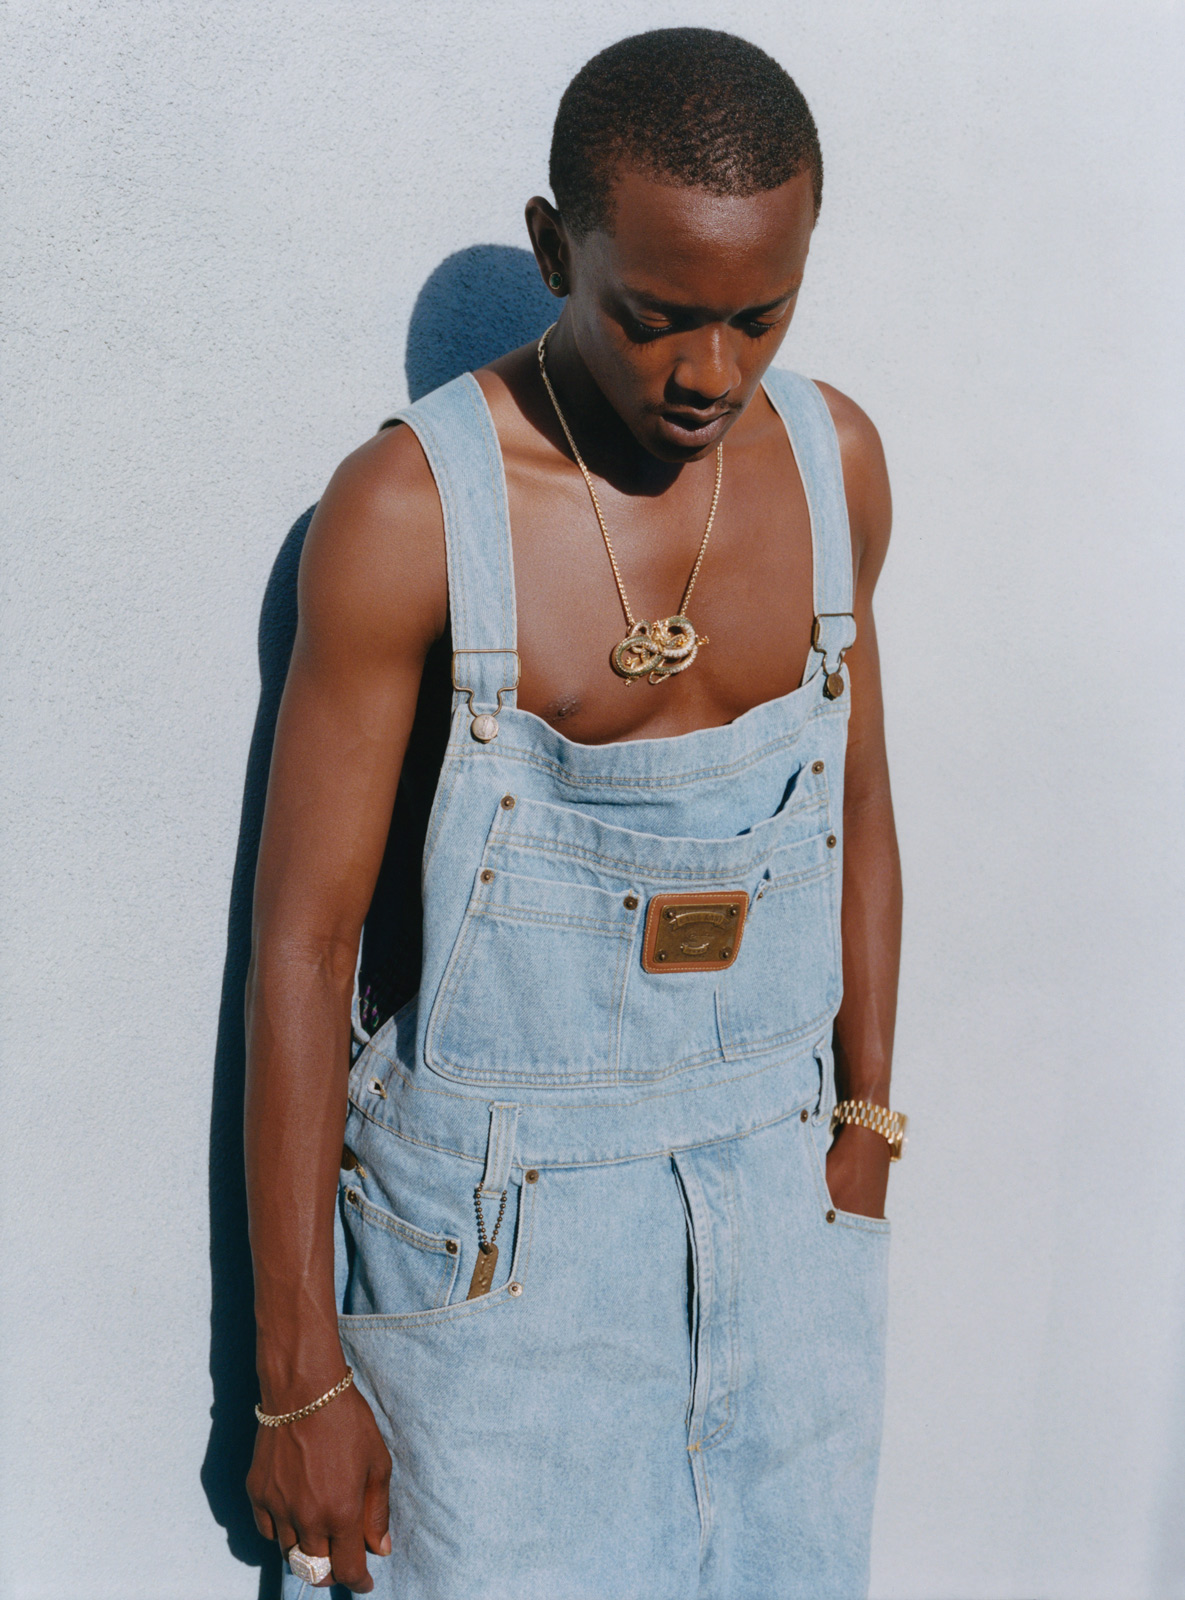 Meet Buddy, the Pharrell-approved rapper bringing Janky vibes to hip hop